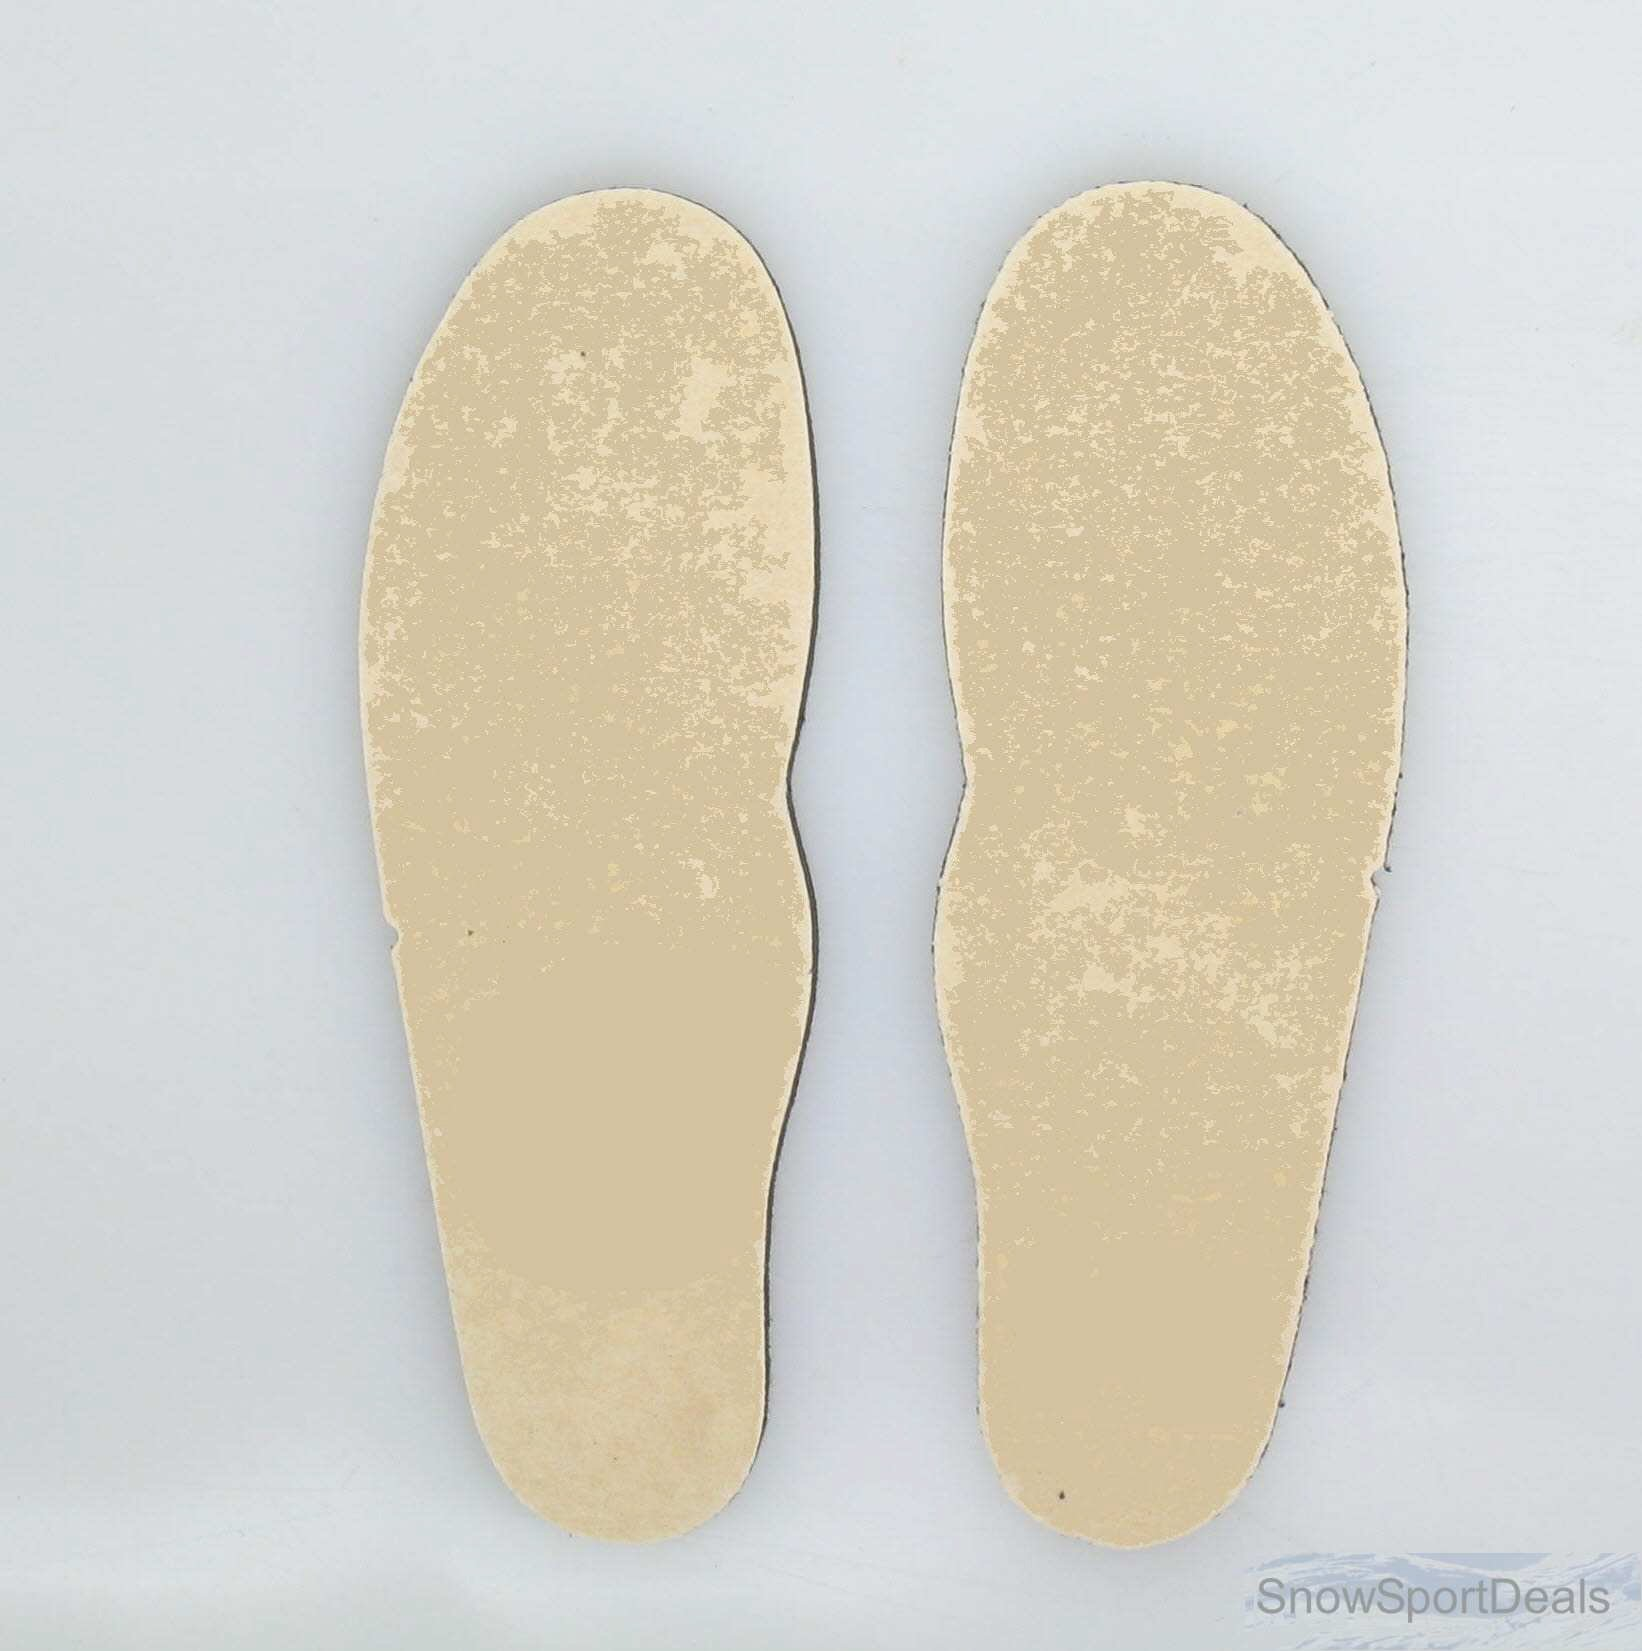 Replacement Ski Boot Insoles